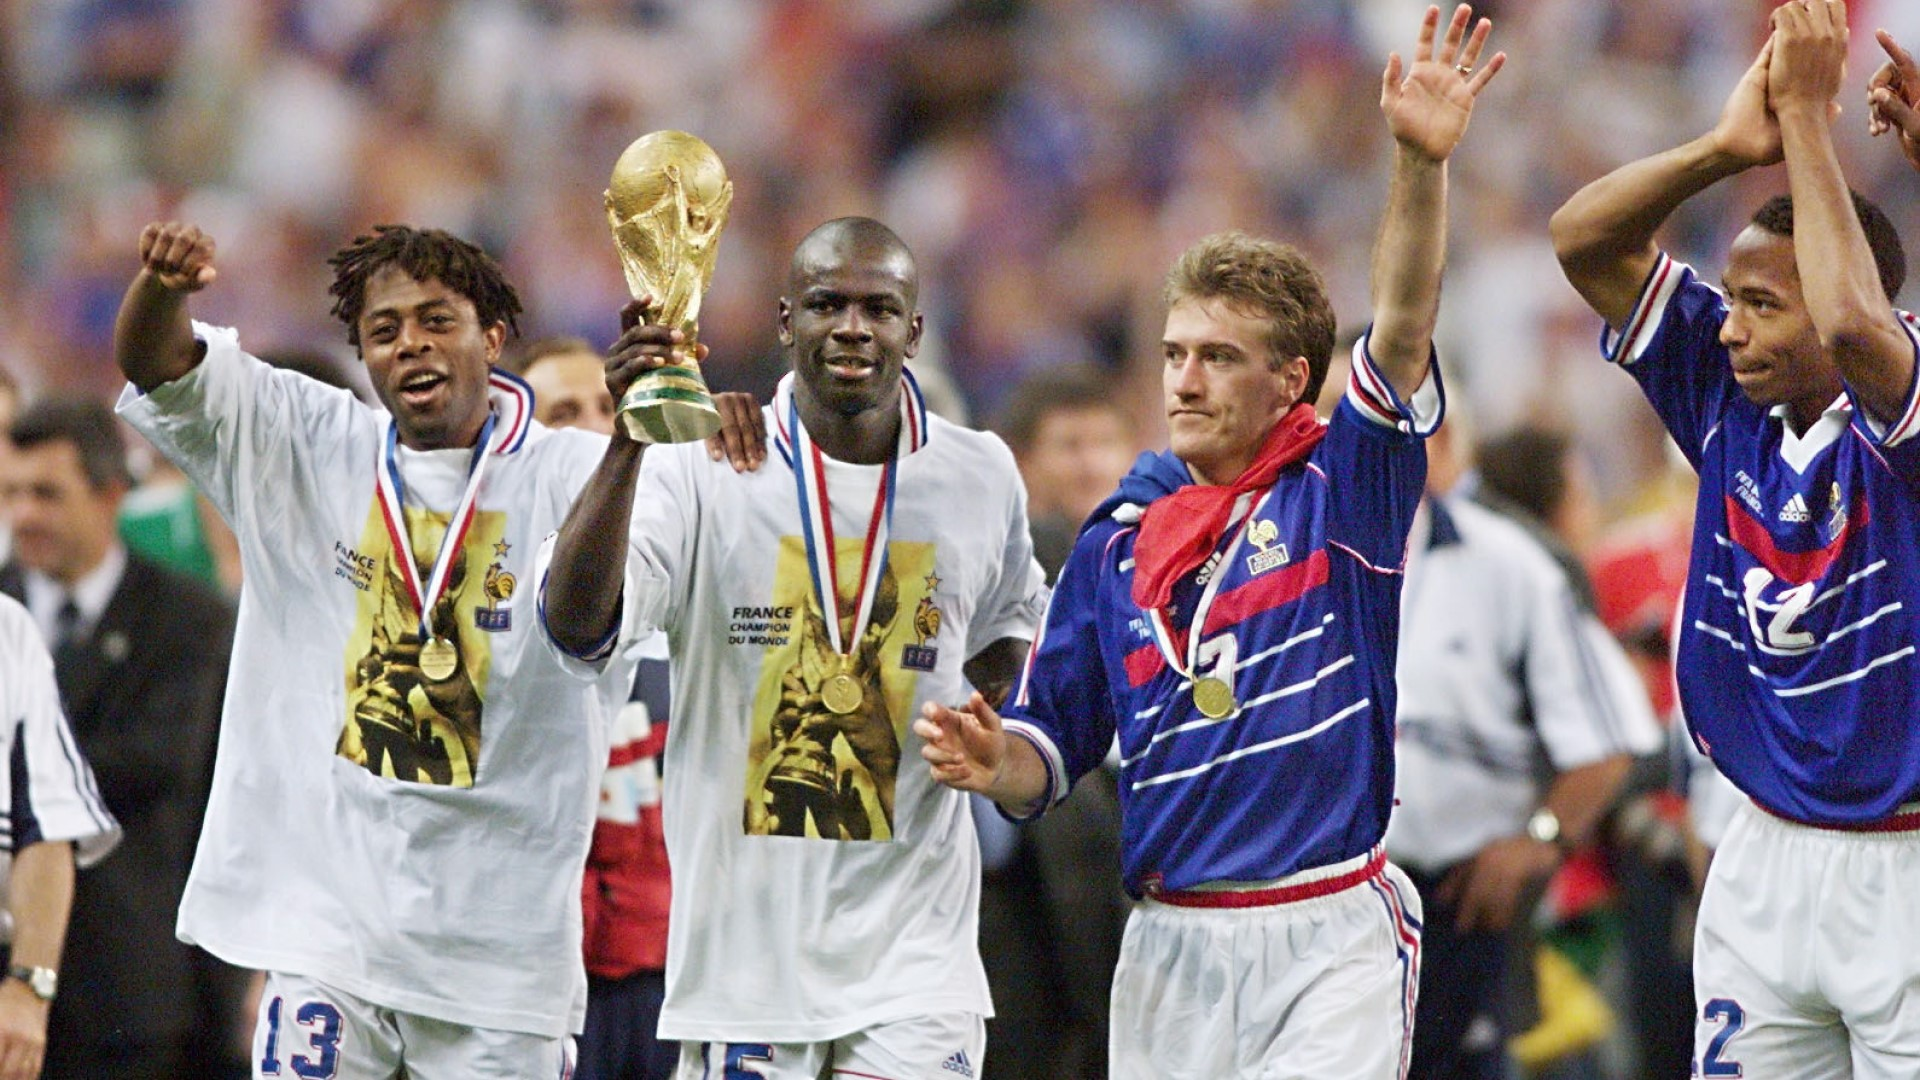 Thuram World Cup 98